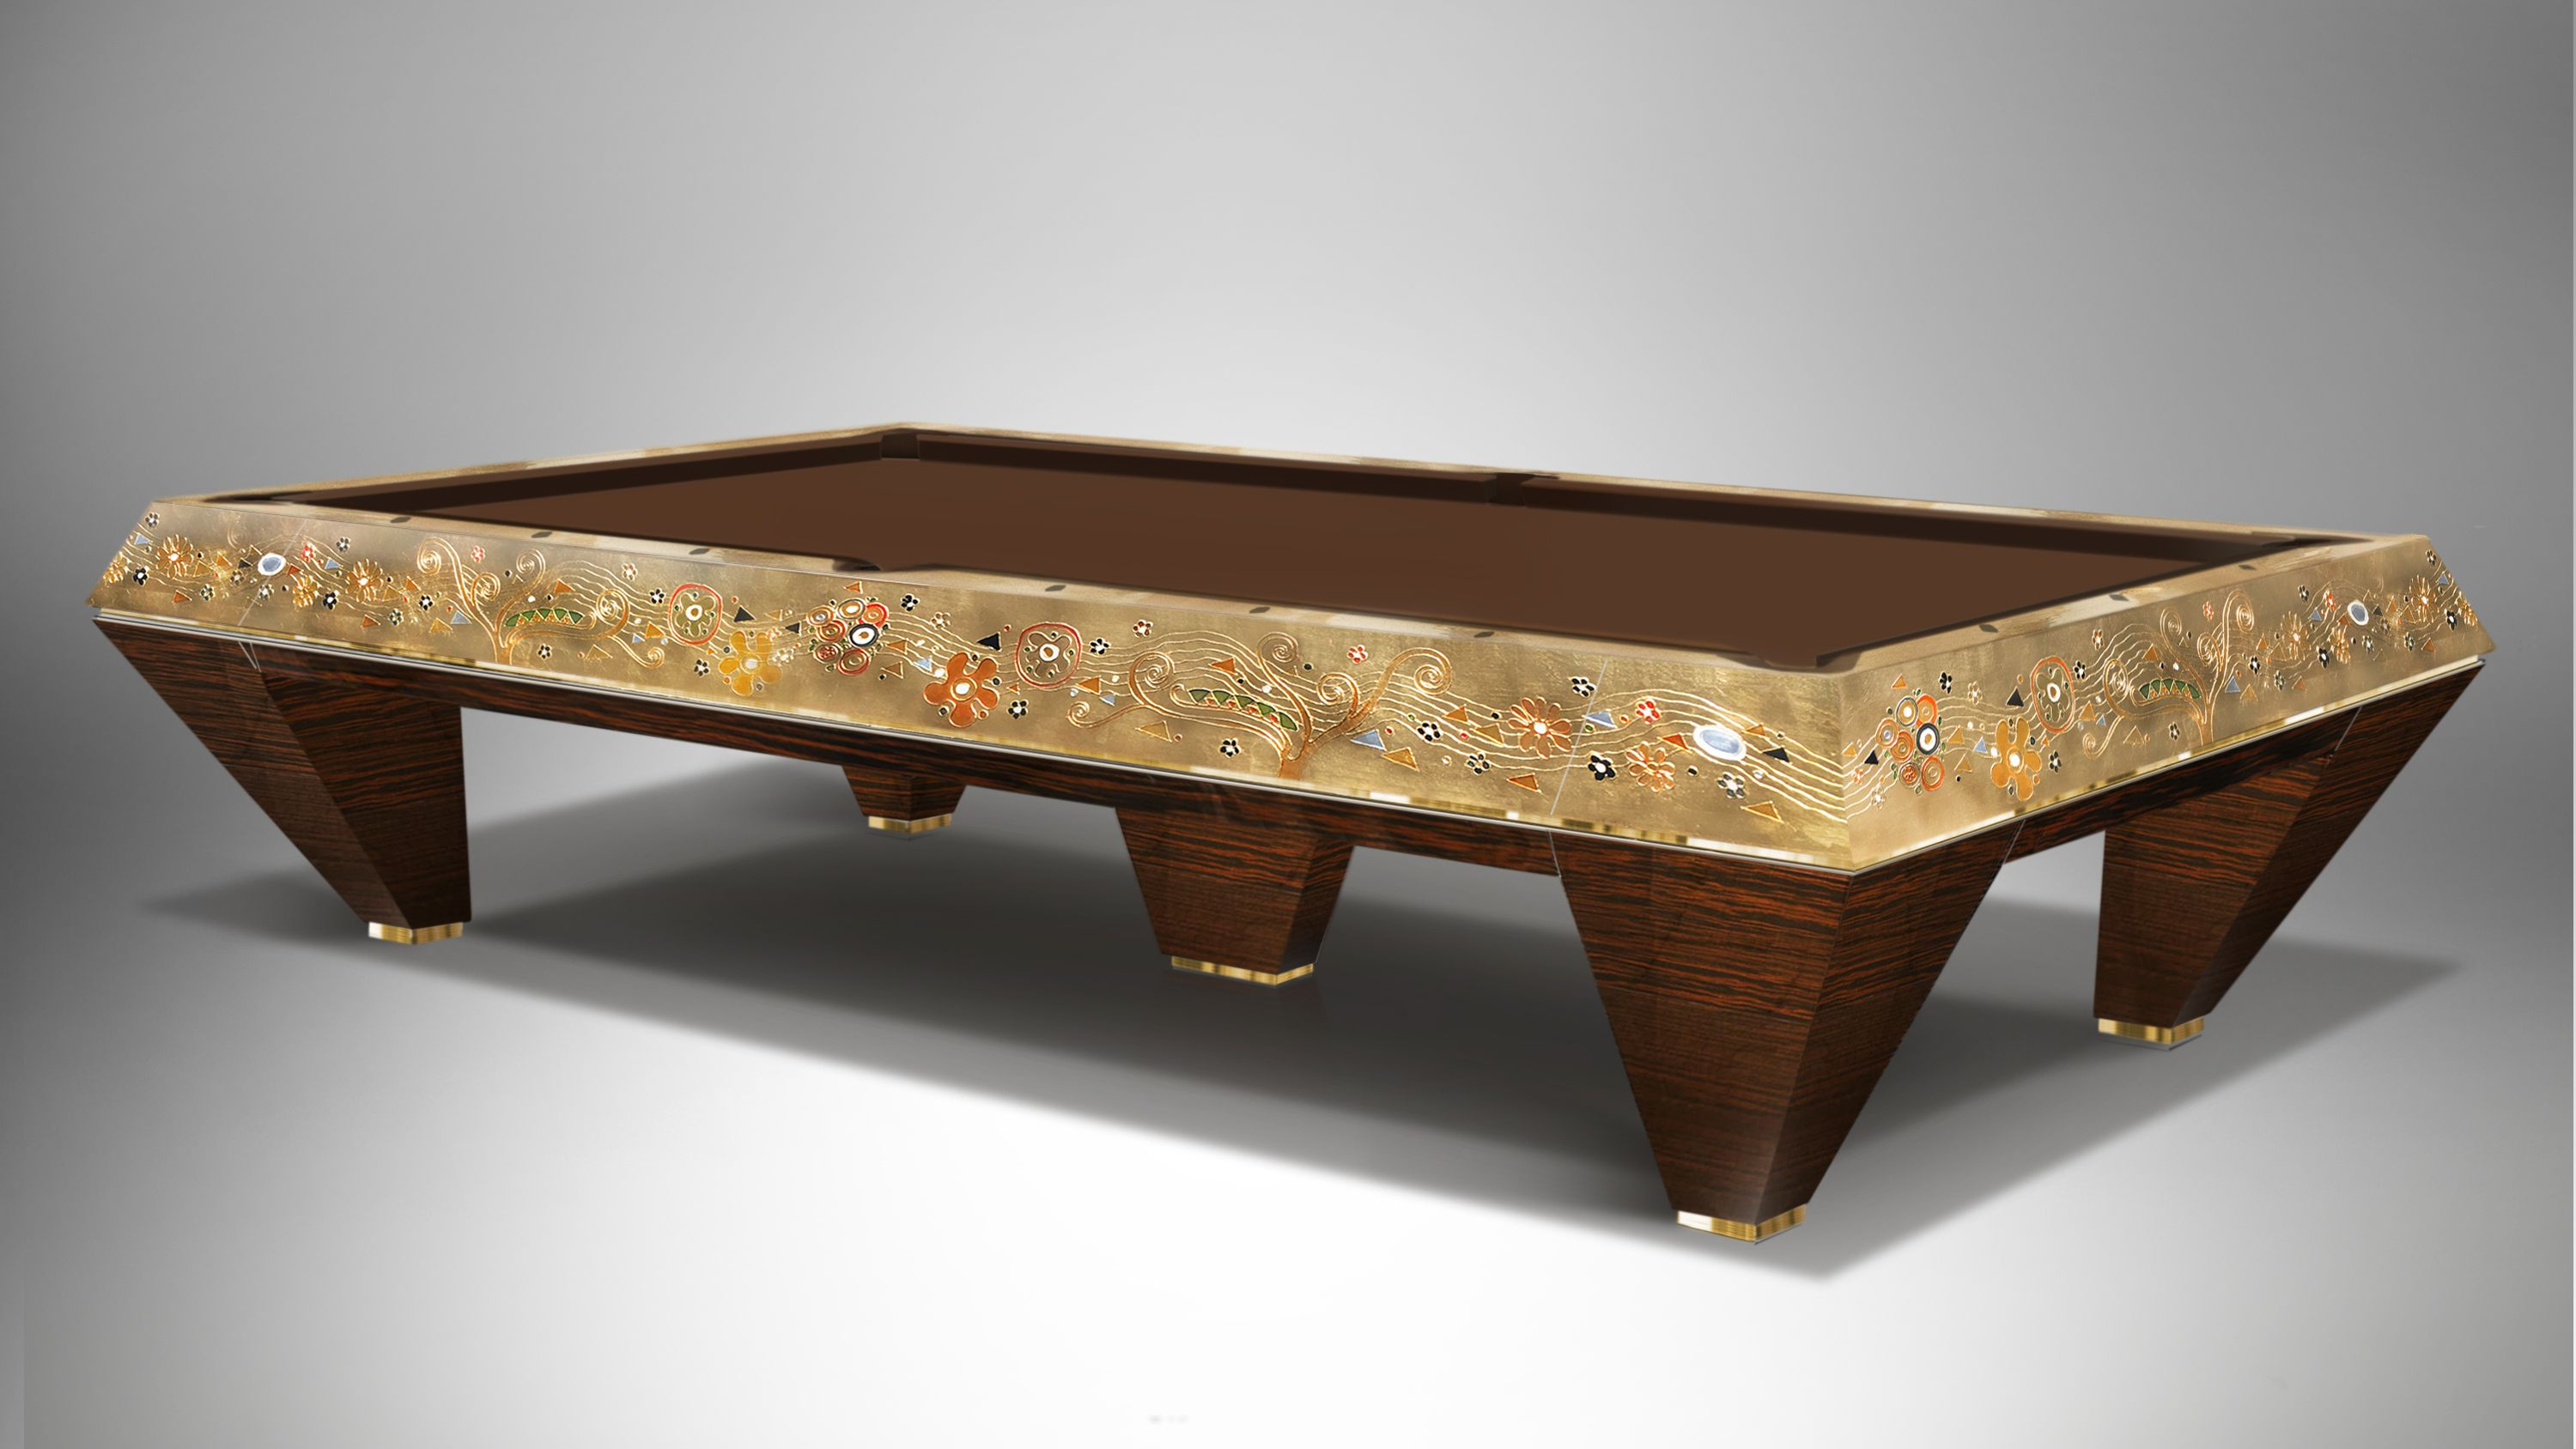 Millenium 5 bases Klimt Gold Leaf Billiard Pool Table 3